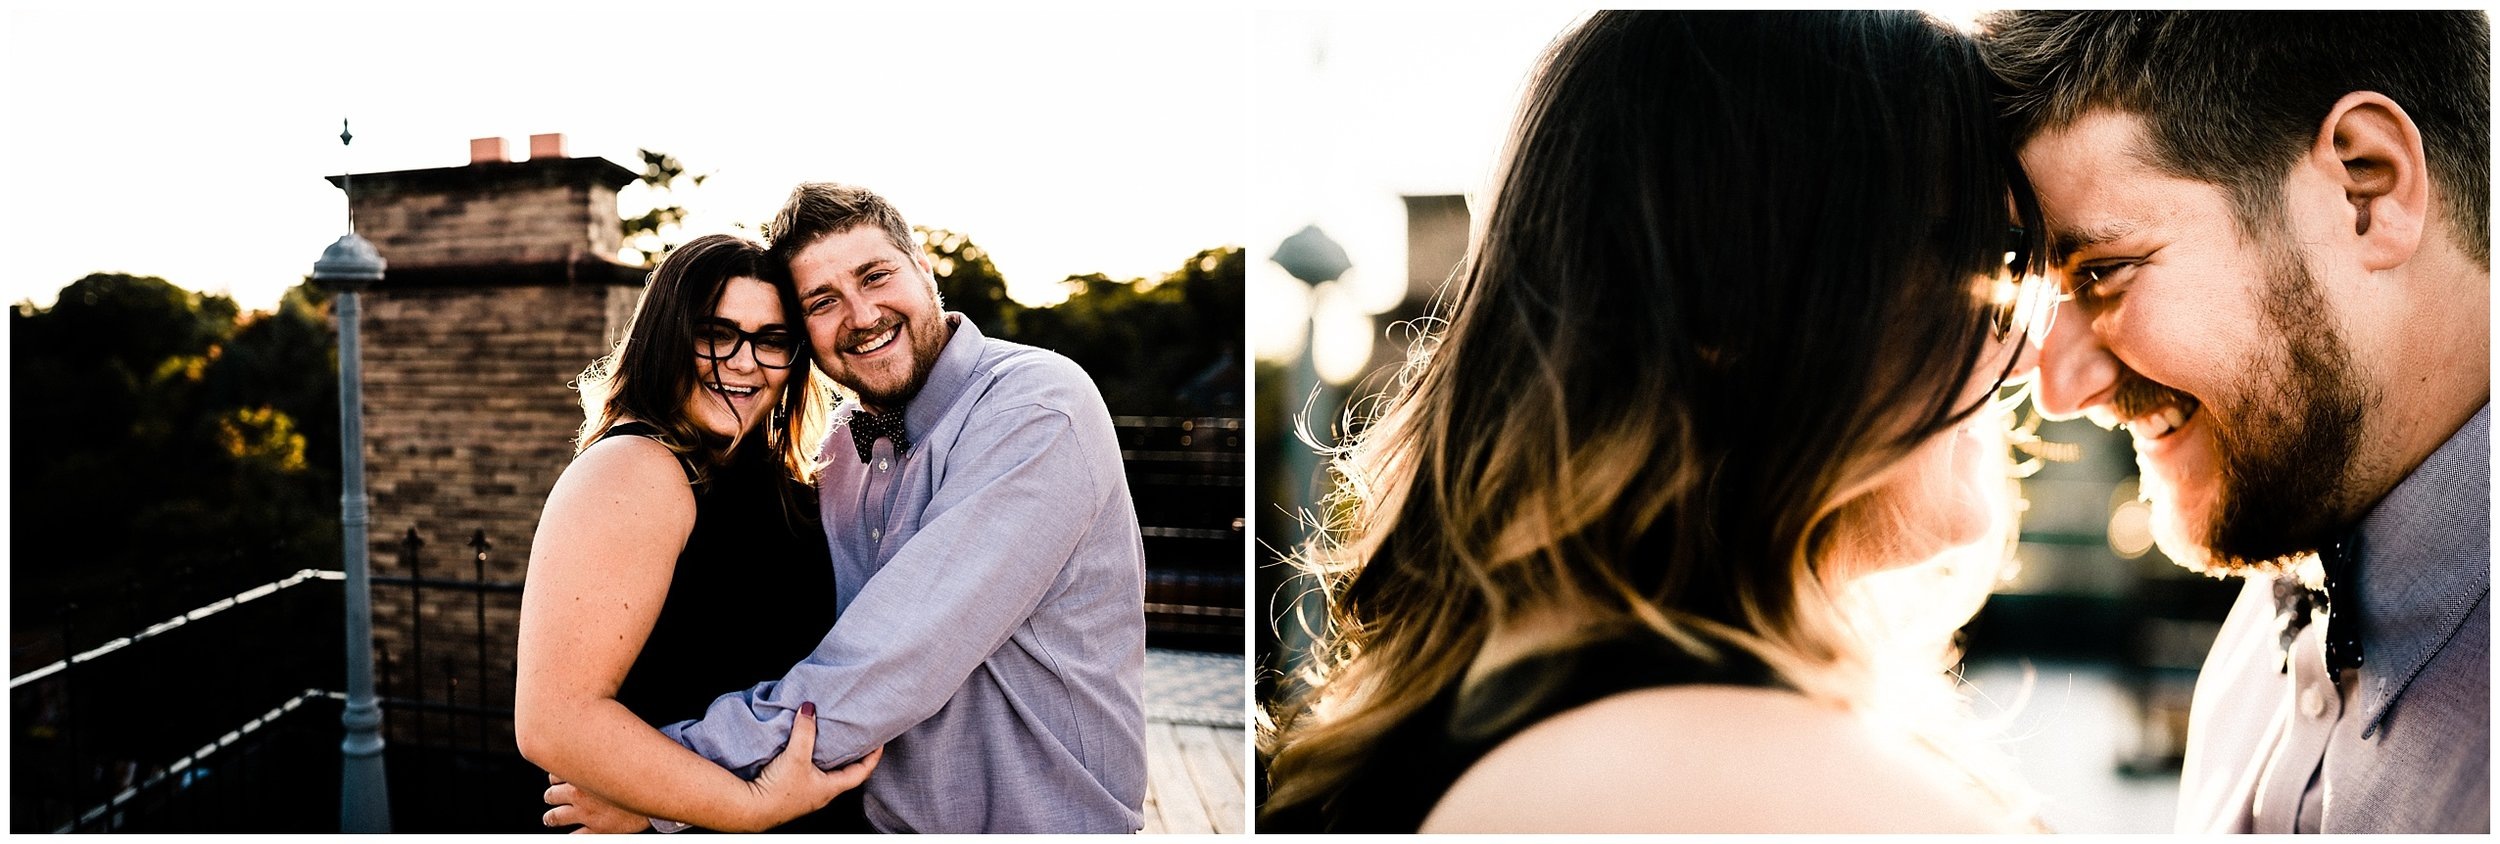 Chad + Ashley | Just Married #kyleepaigephotography_1398.jpg